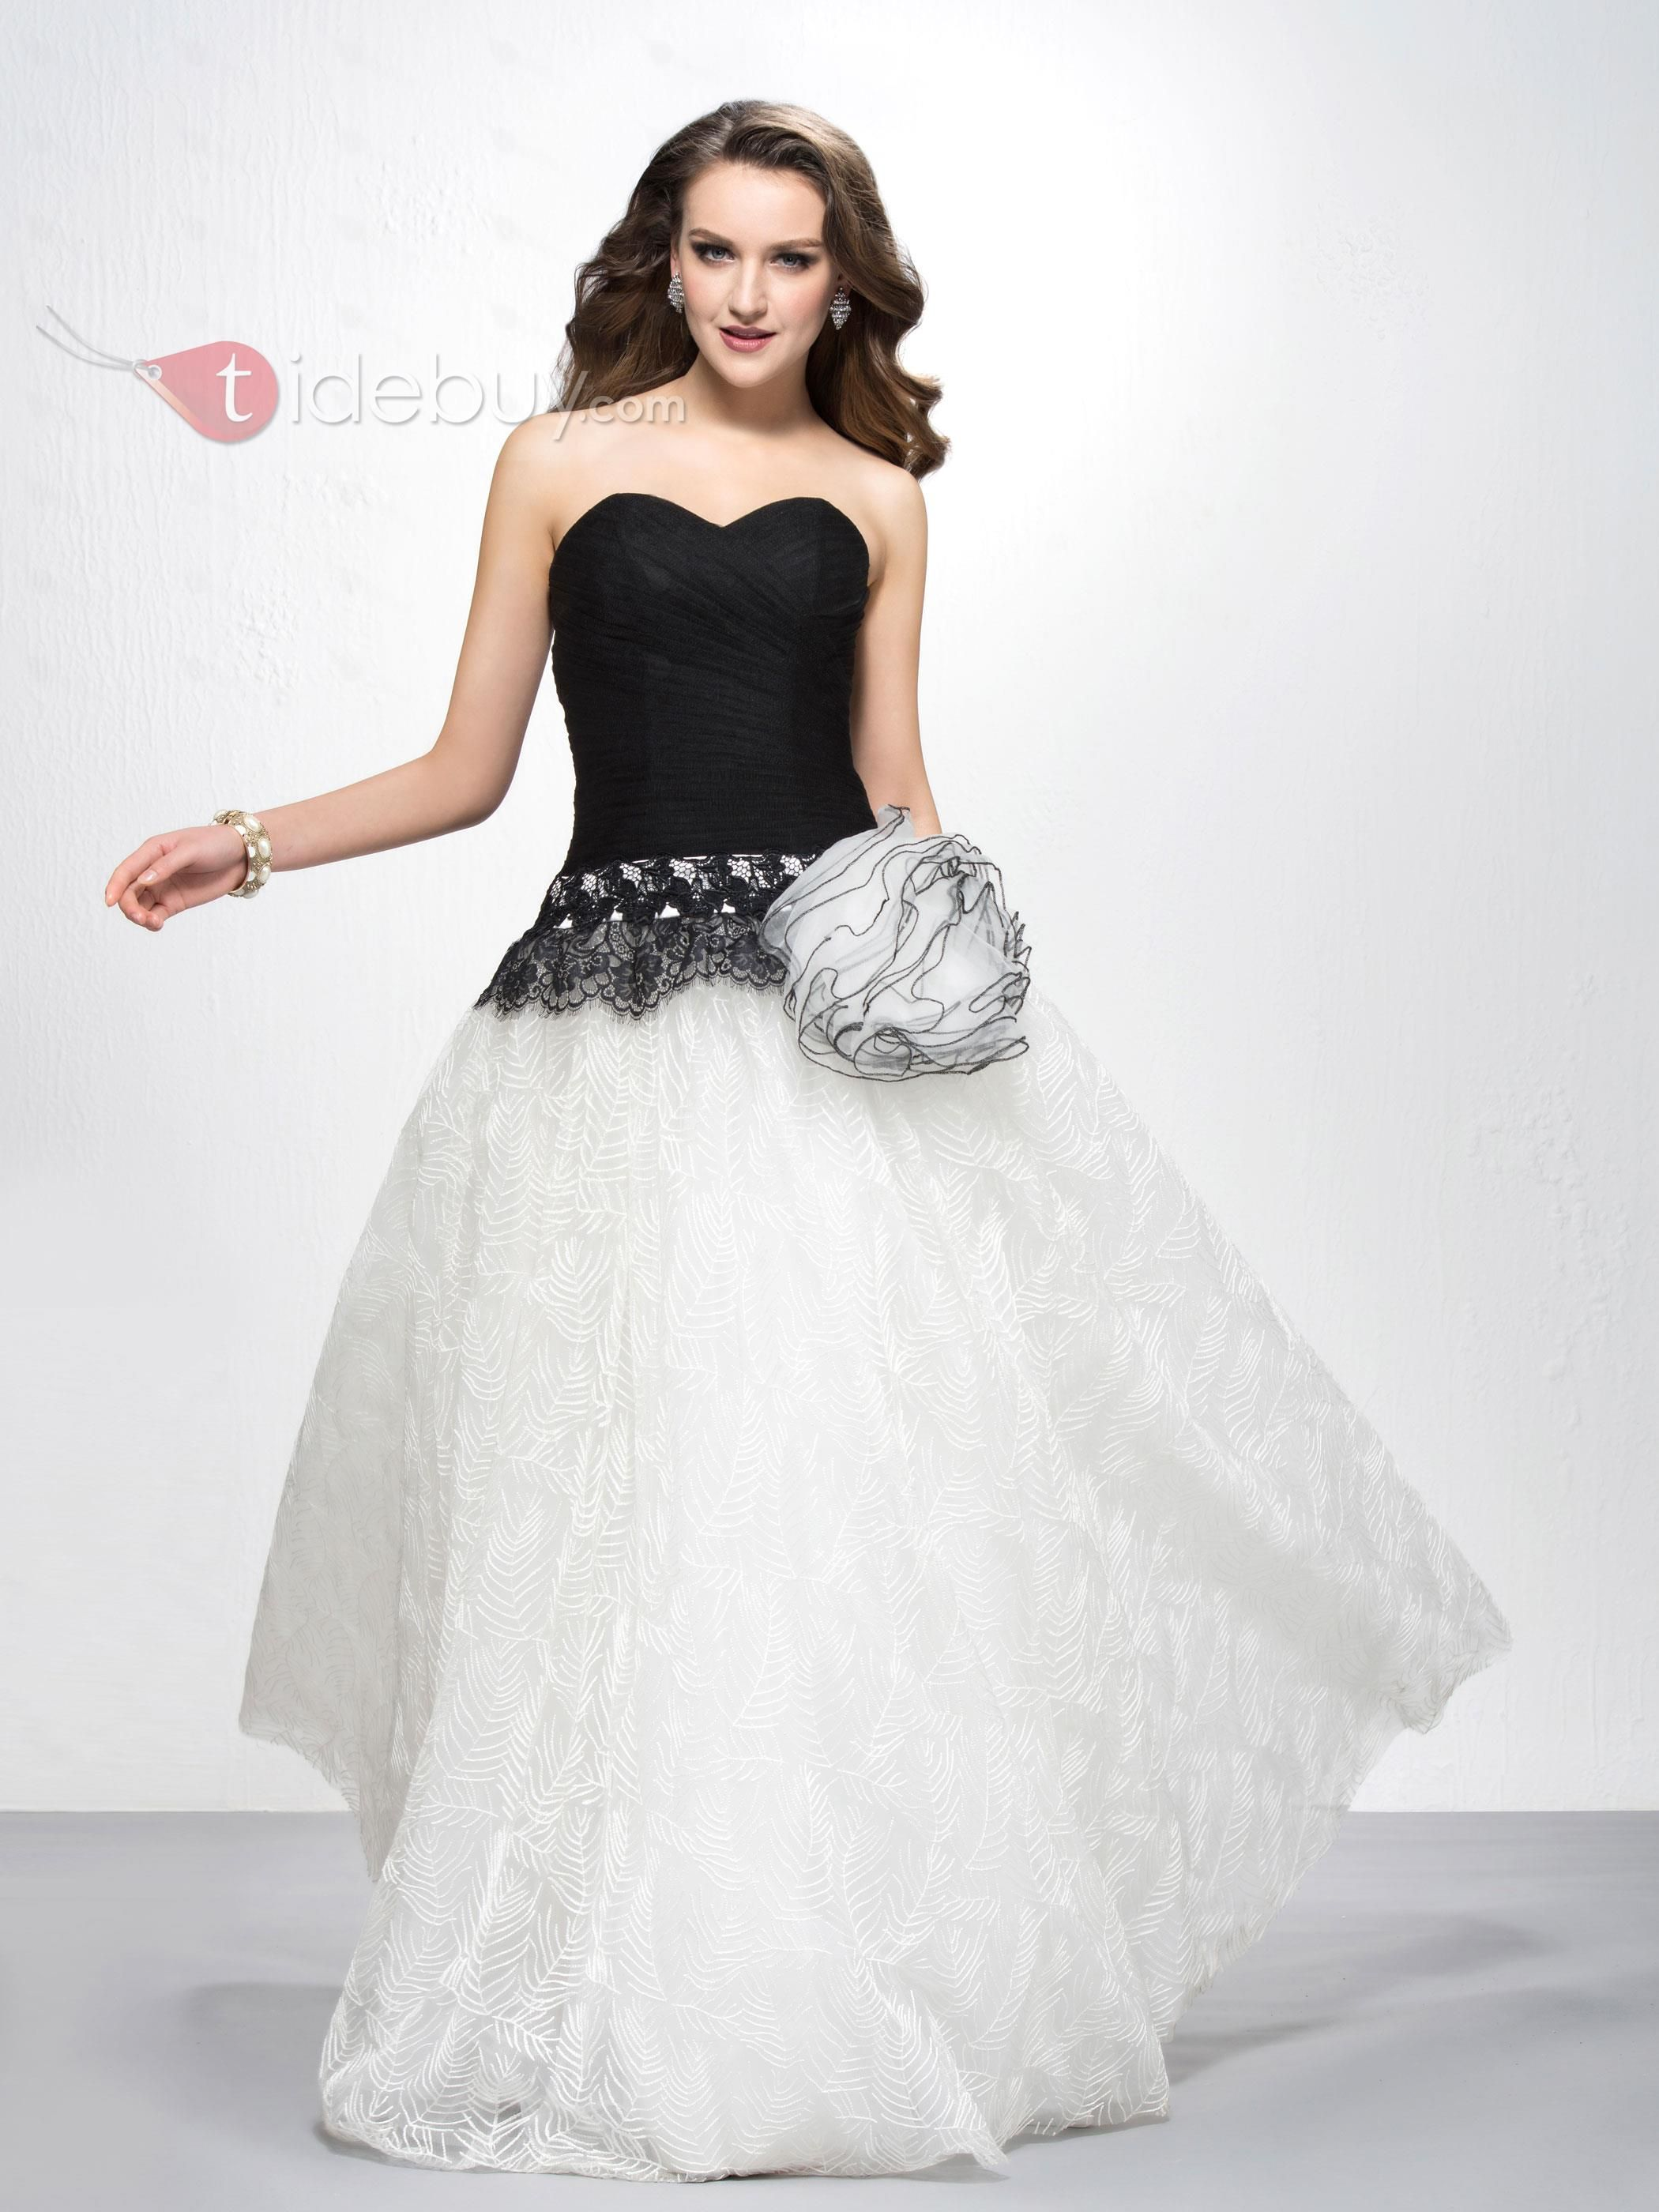 http://www.tidebuy.com/product/Fantastic-Ball-Gown-Flower-Sweetheart ...